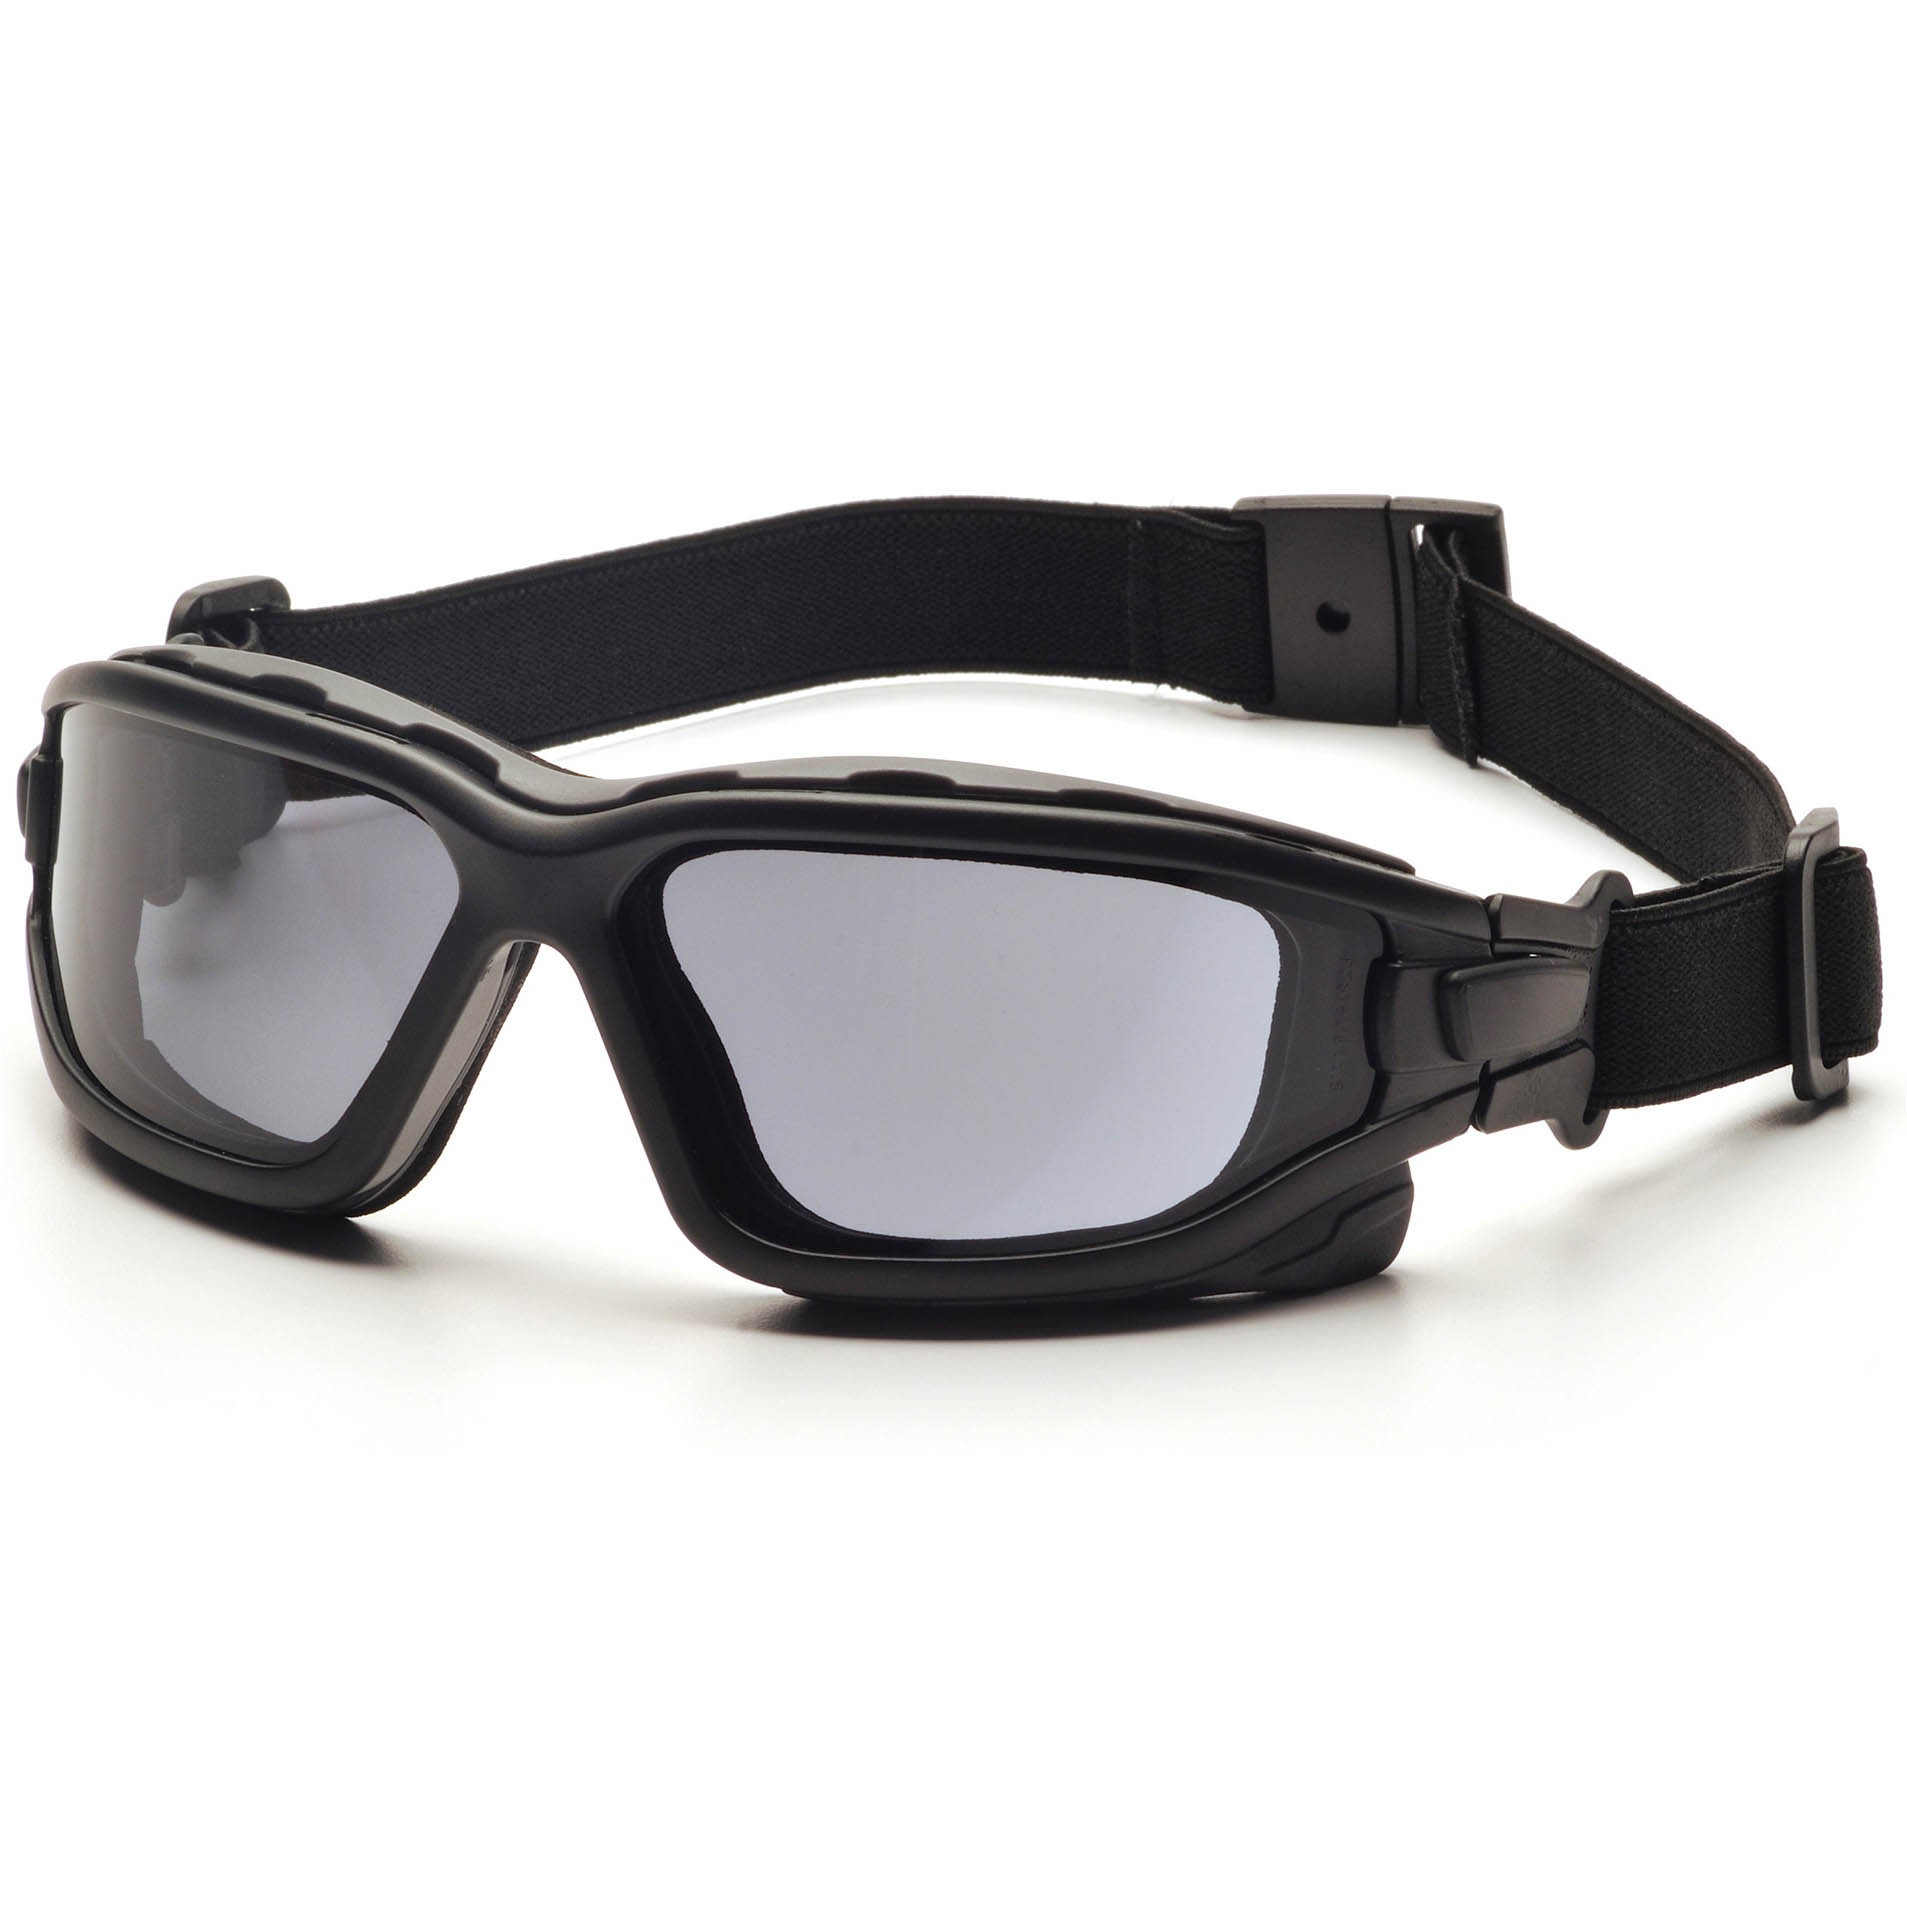 Pyramex I Force Safety Glasses Goggles Black Frame